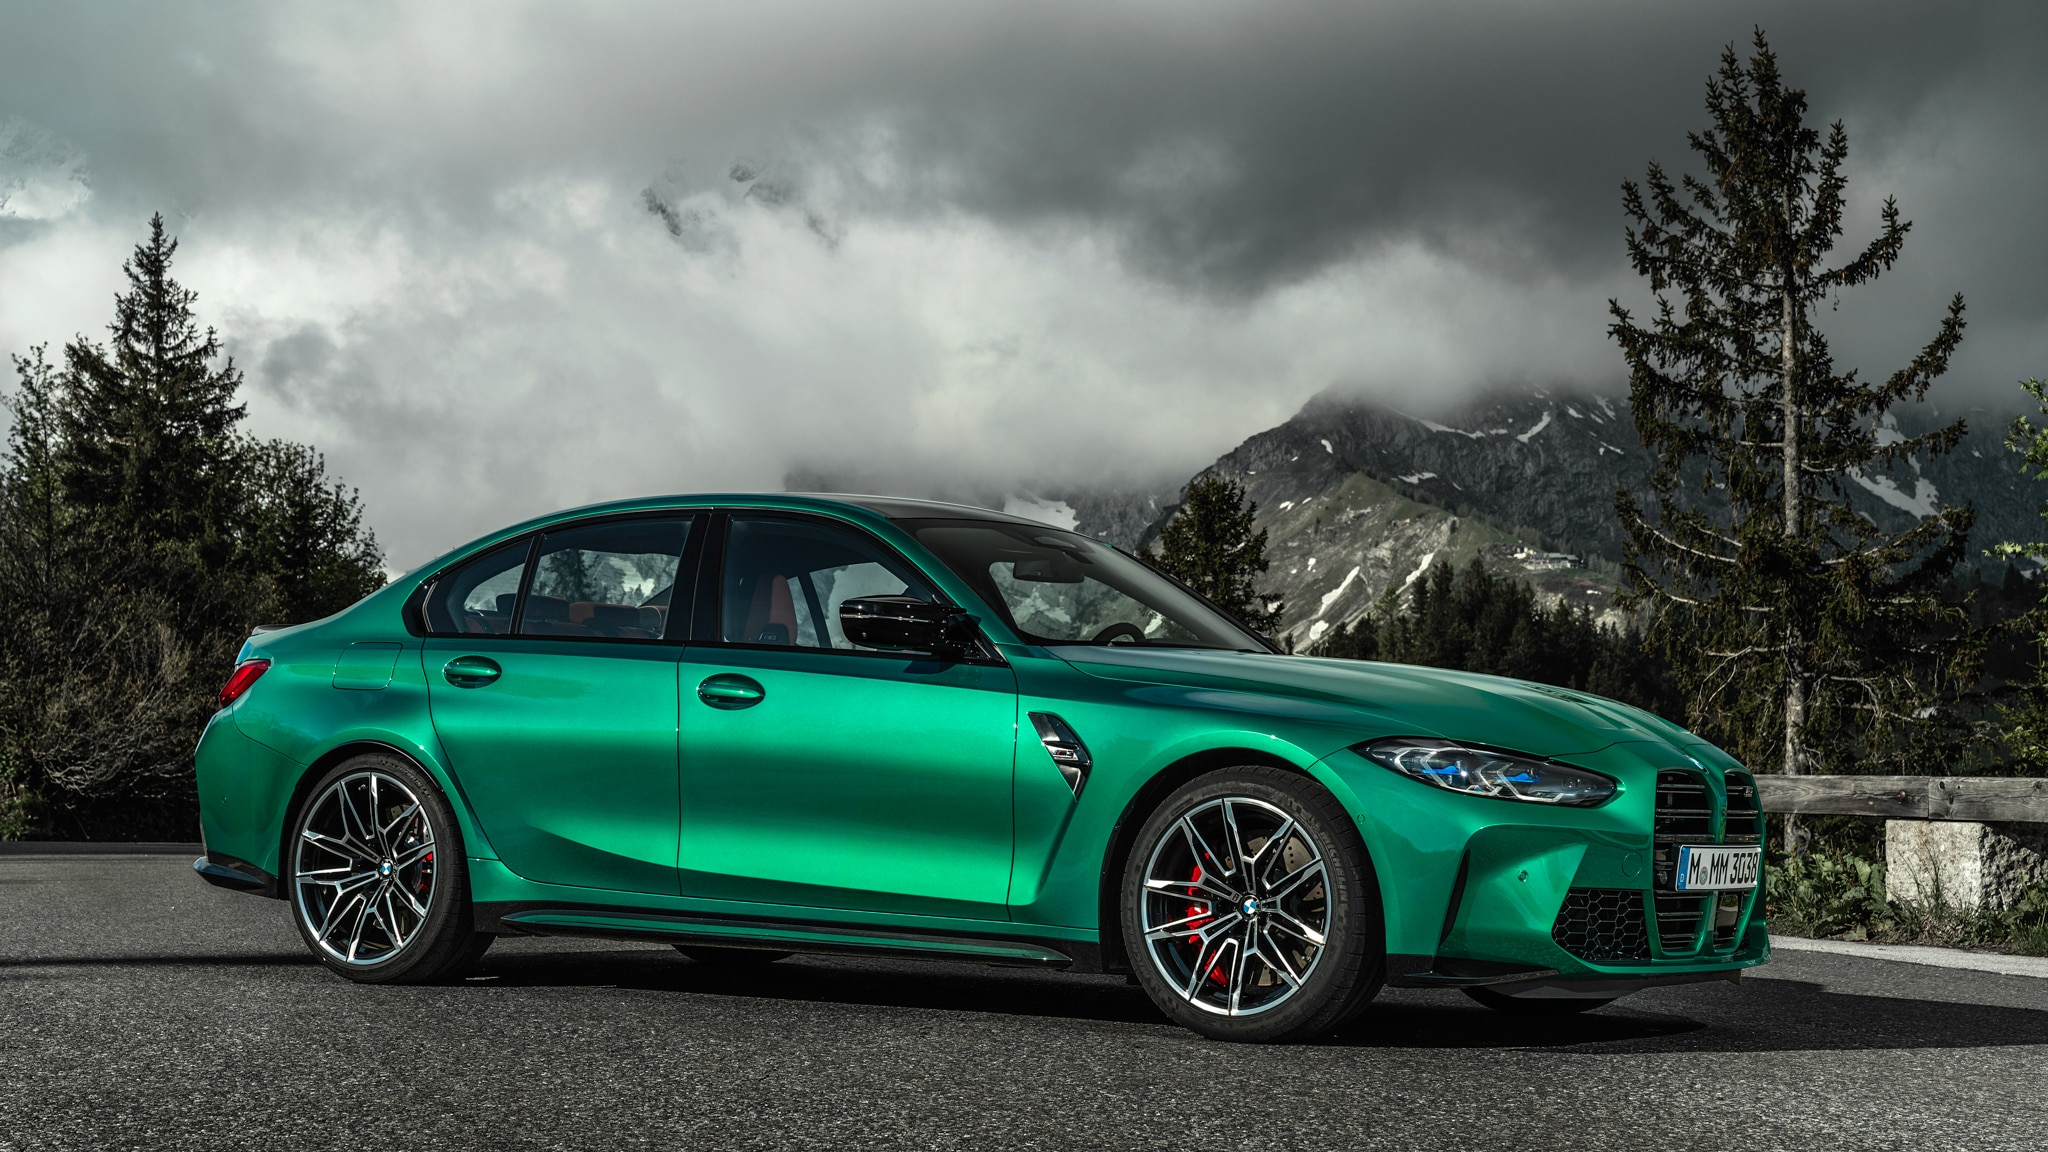 New 2021 Bmw M3 Arrives With M4 Styling 500 Hp